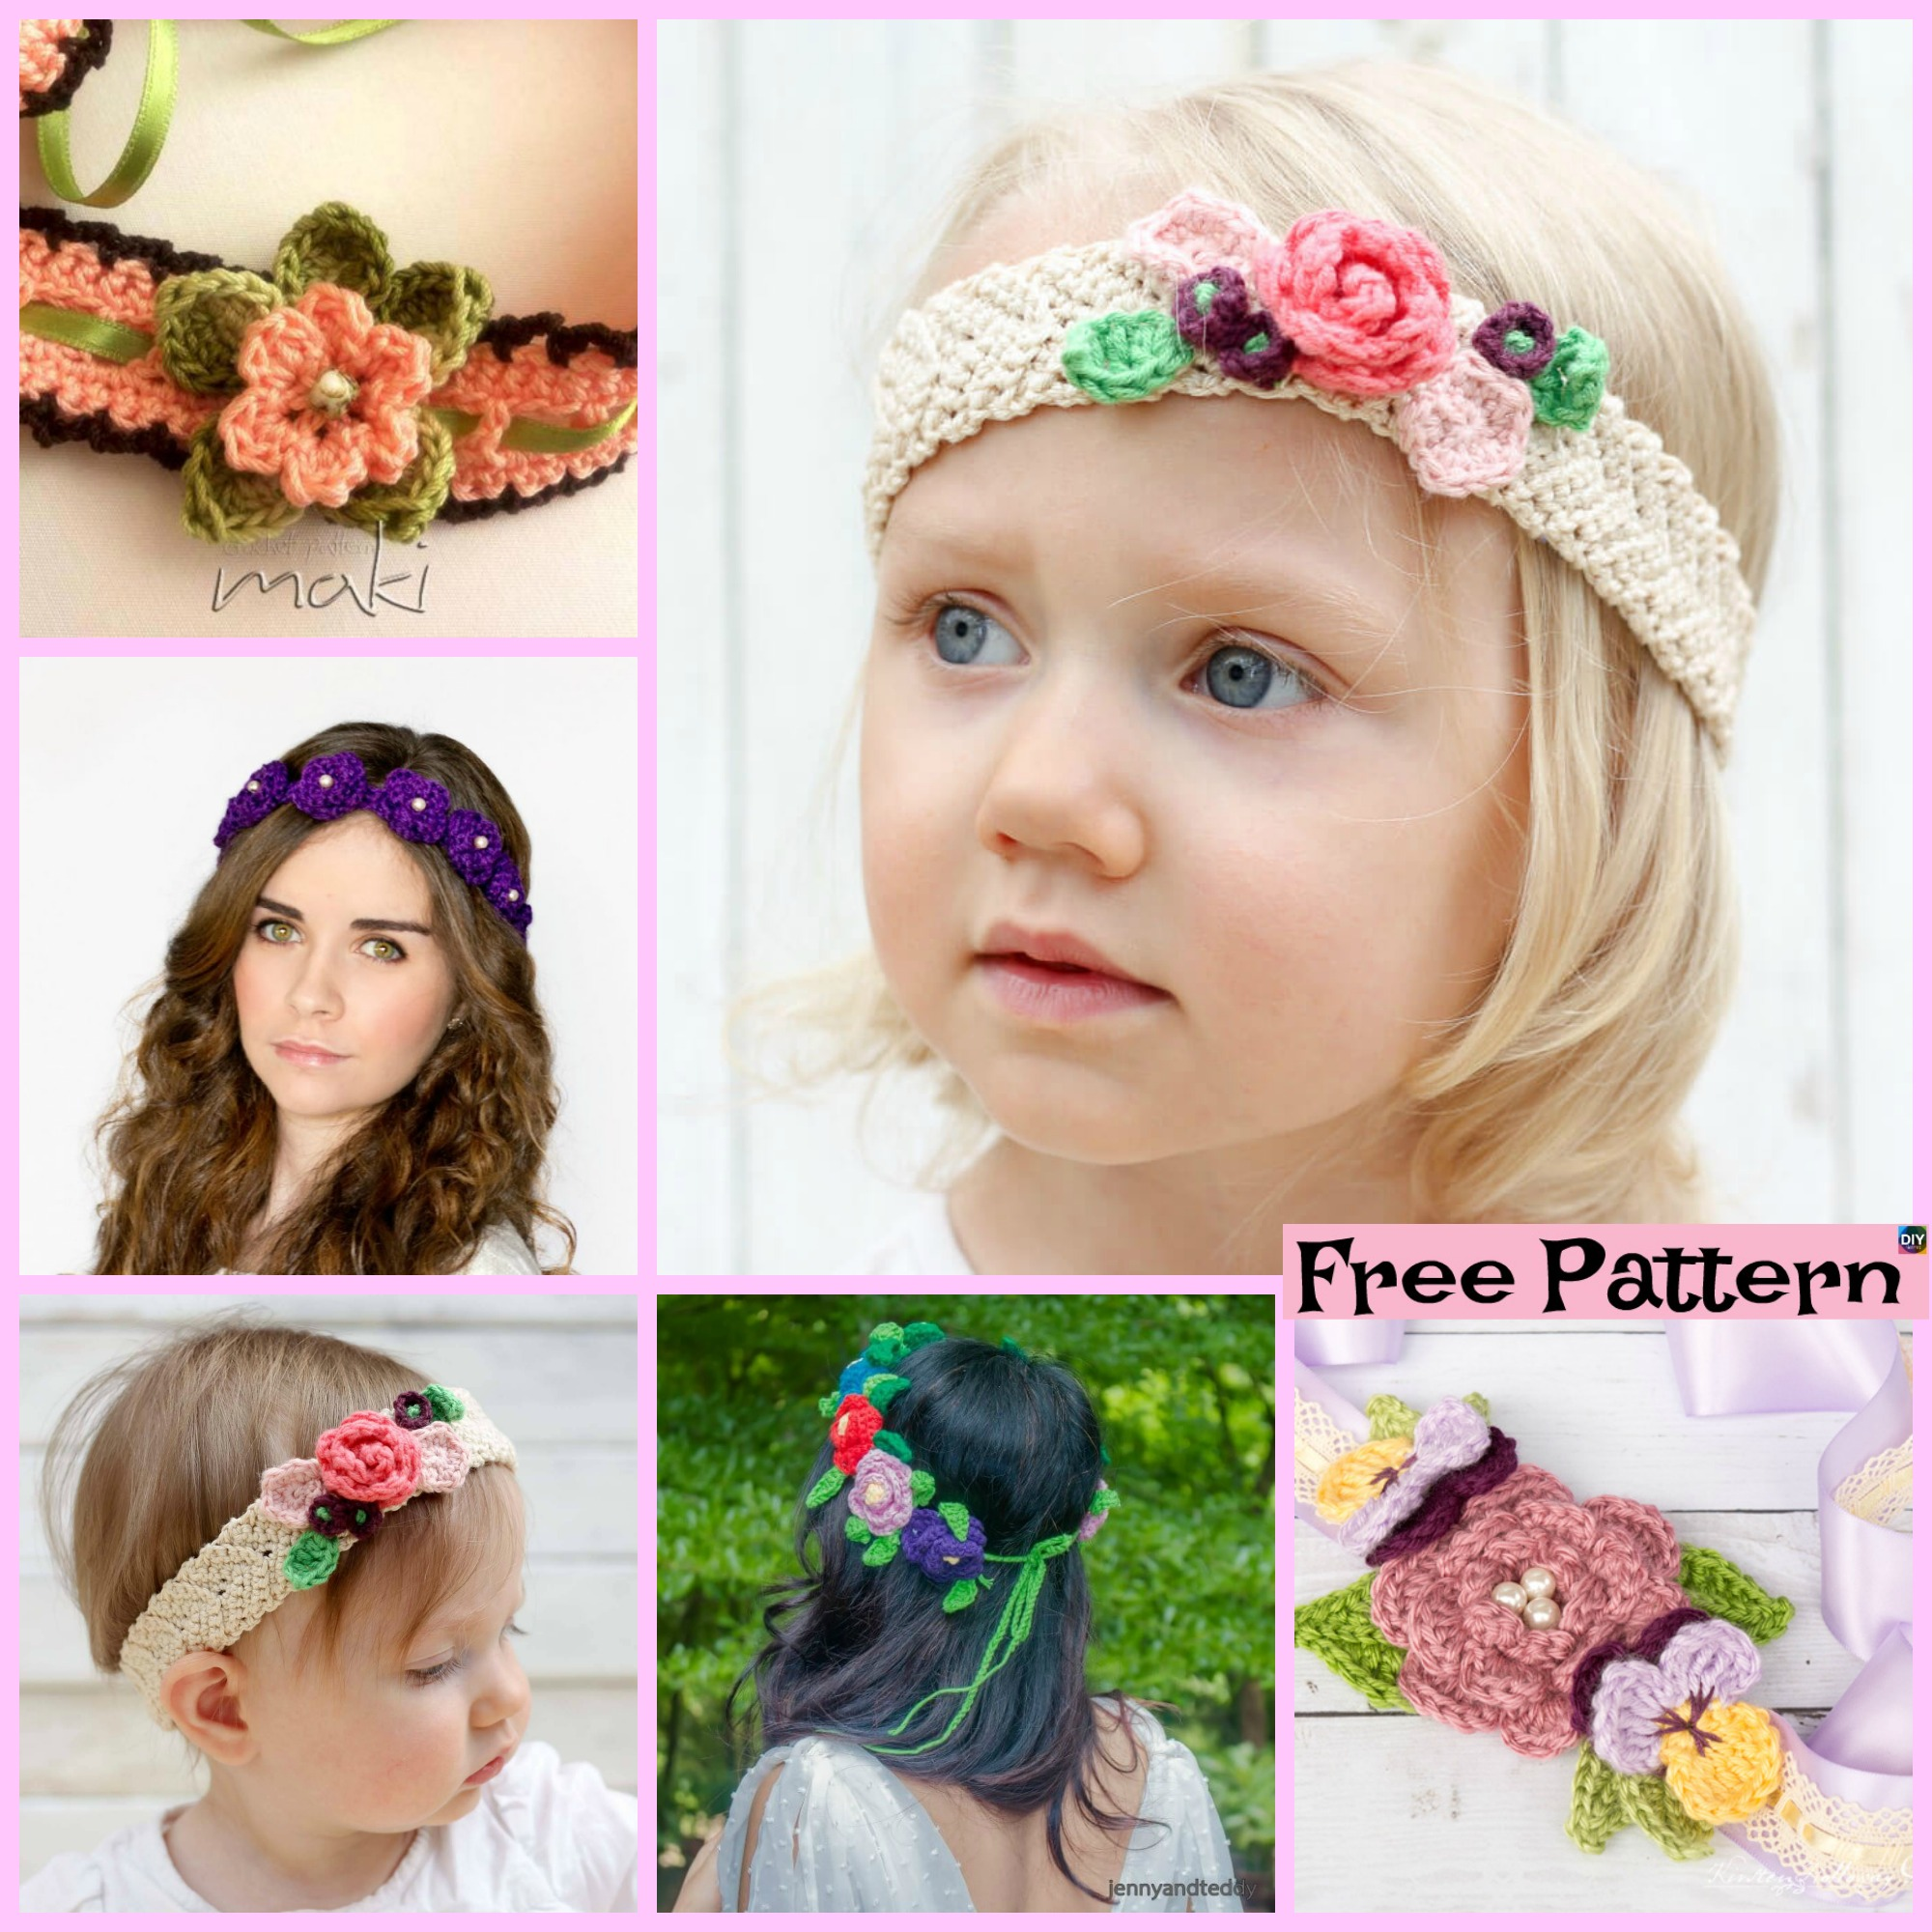 diy4ever-Crochet Flower Headband - Free Pattern